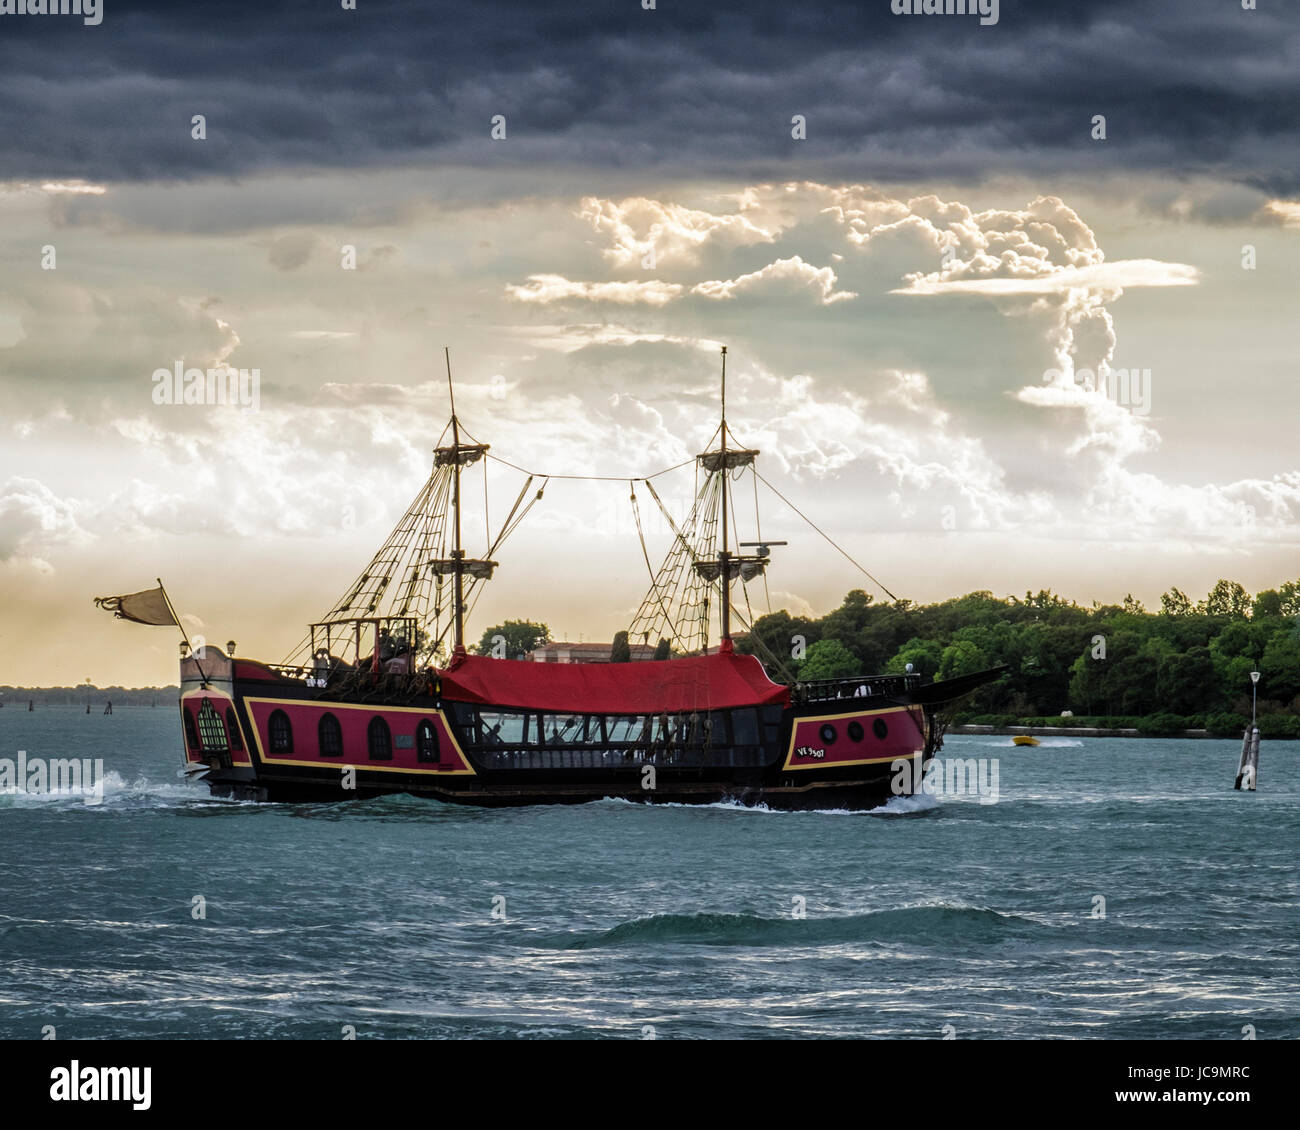 Italy,Venice,Castello.Laguno Veneto,Venetian lagoon with tail ship and black clouds of storm,Sailing ship and cloudy - Stock Image